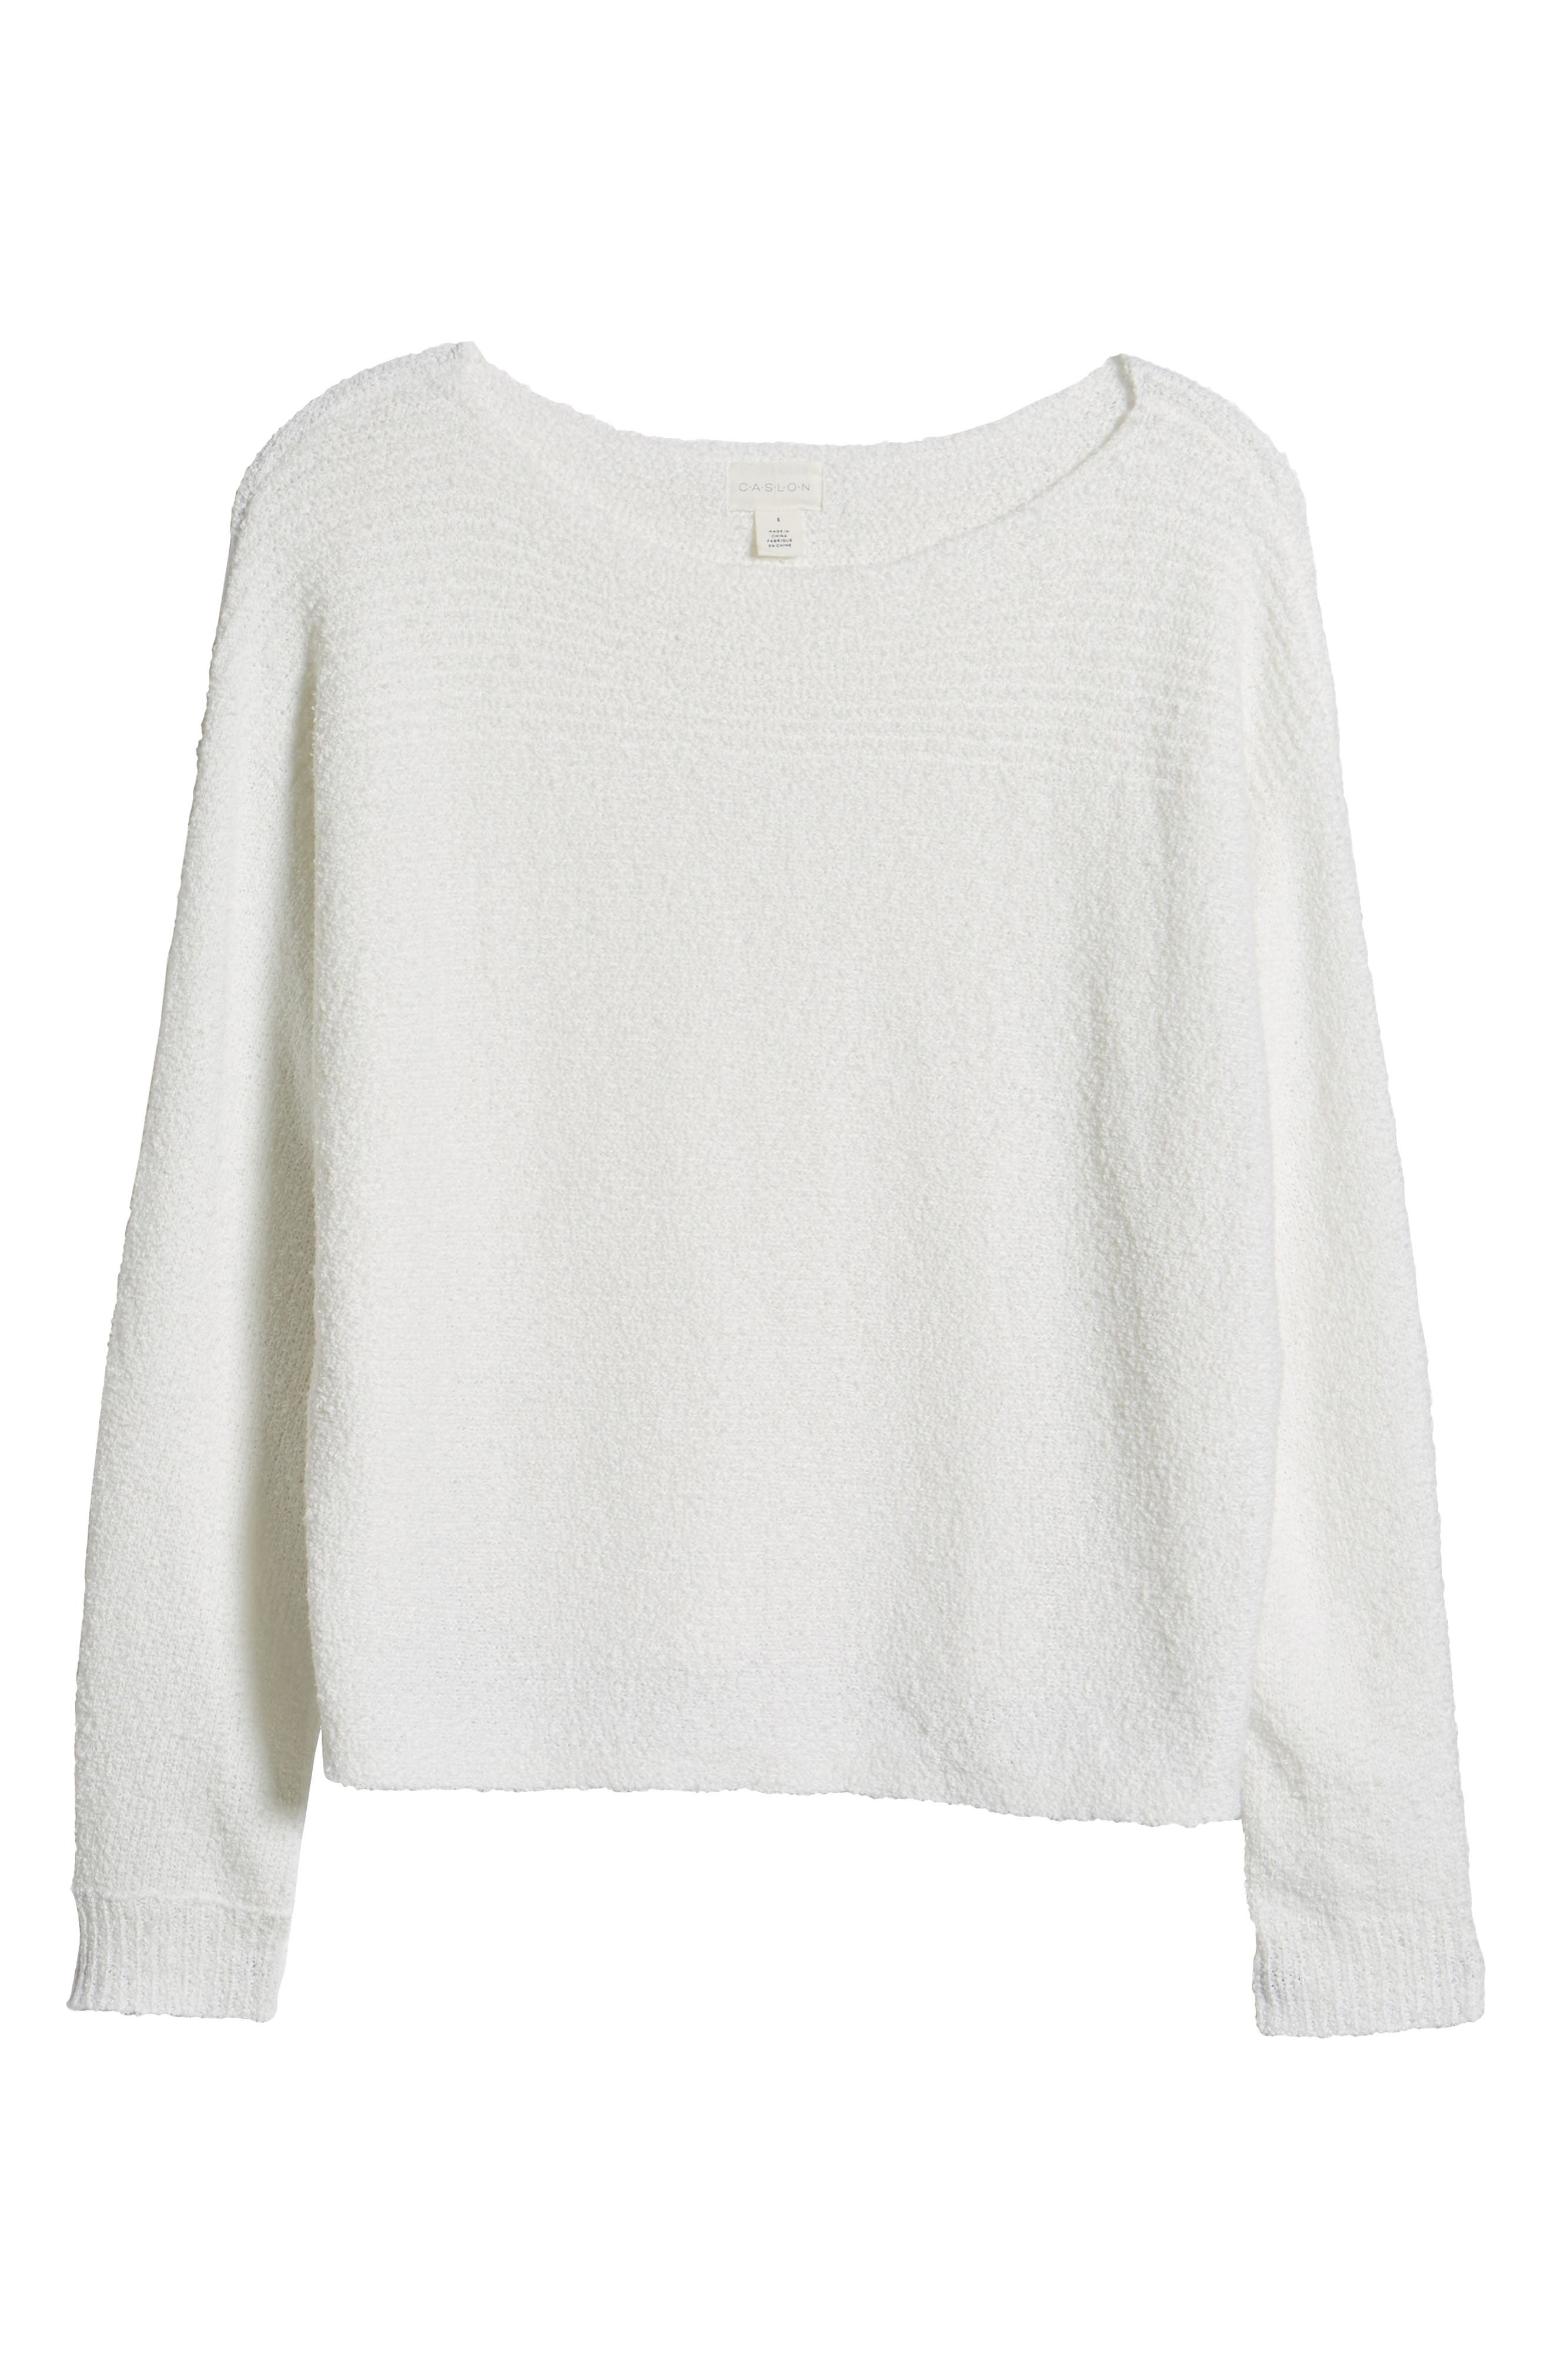 Calson<sup>®</sup> Dolman Sleeve Sweater,                             Alternate thumbnail 30, color,